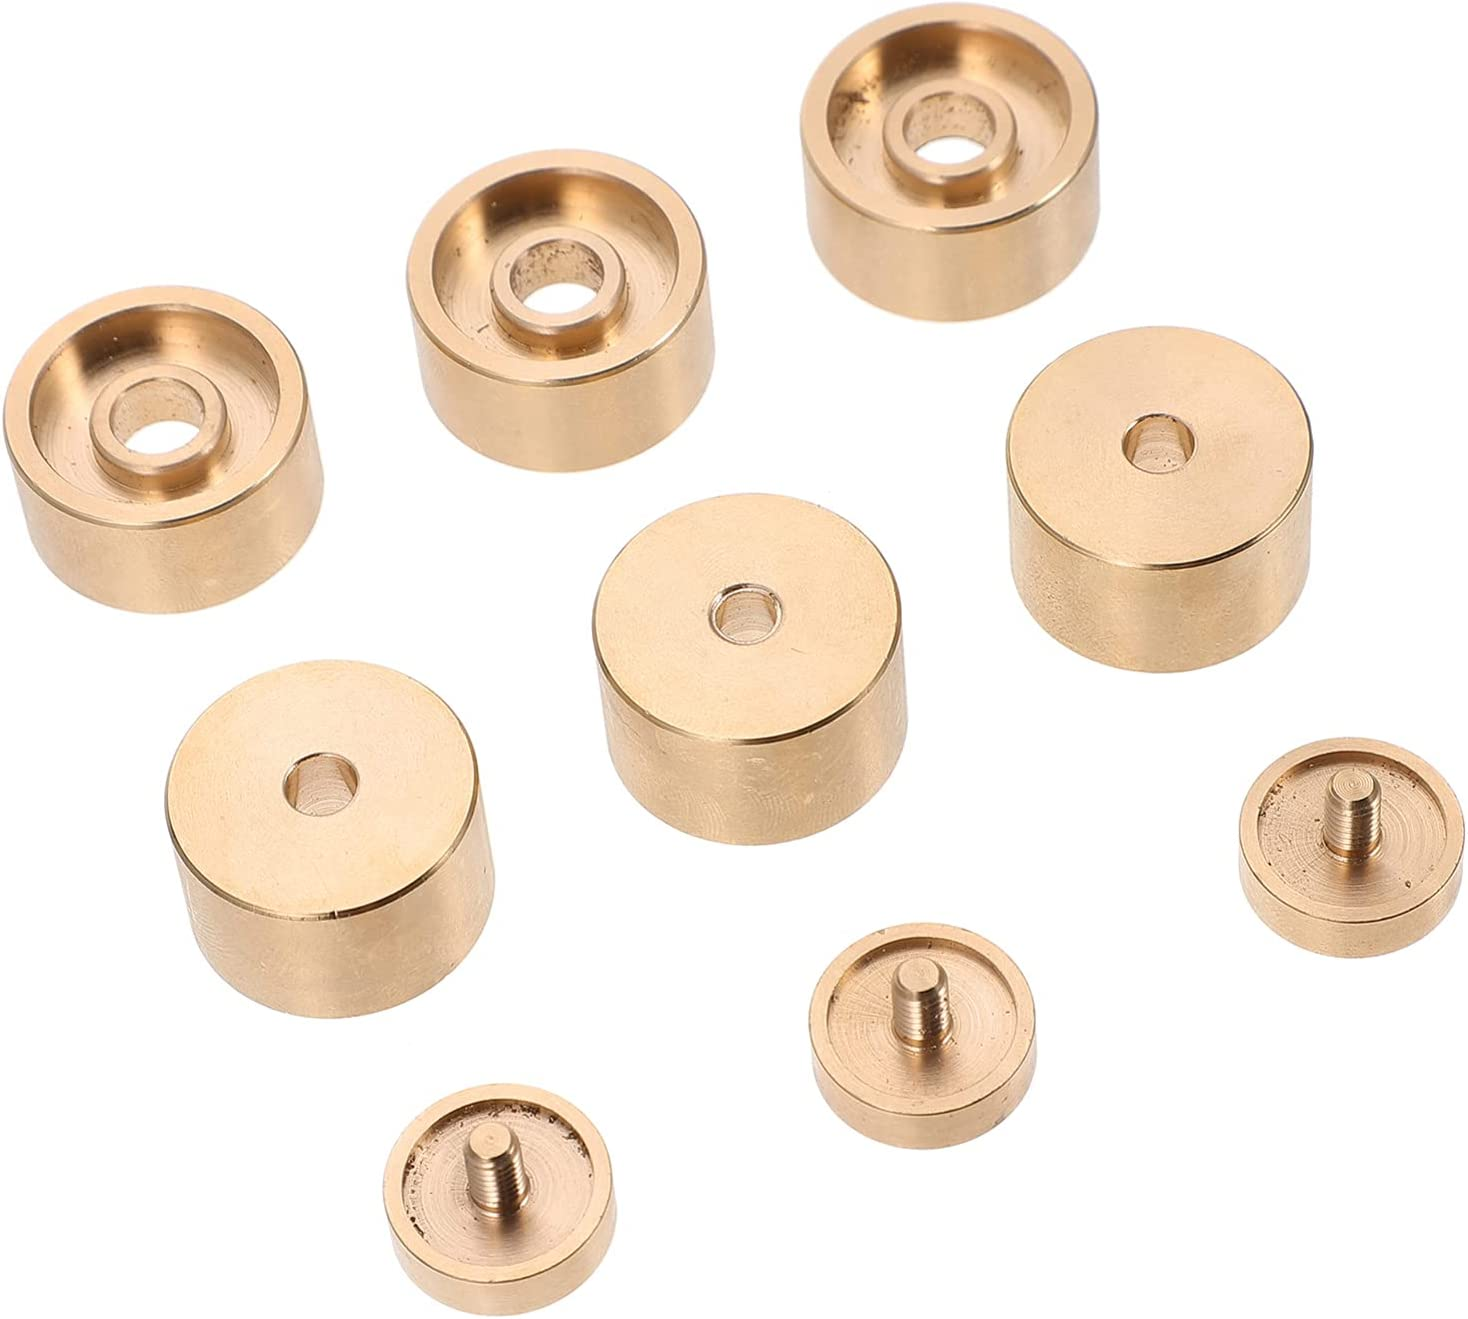 ARTIBETTER Trumpet Button Piston Cover Limited price Protection 25% OFF Instru